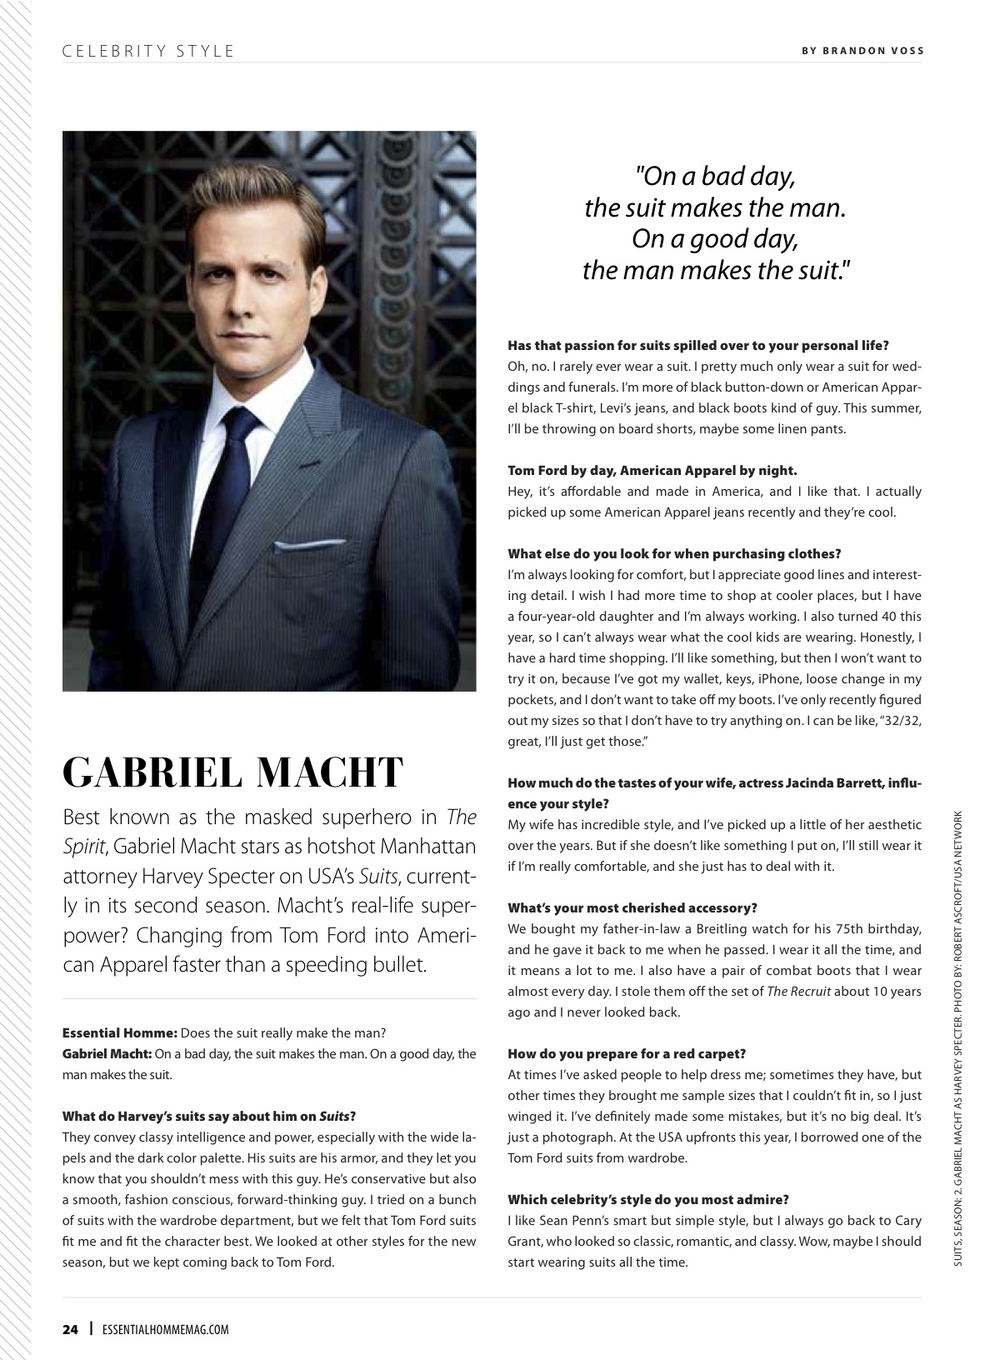 Essential Homme_CS Gabriel Macht.jpg